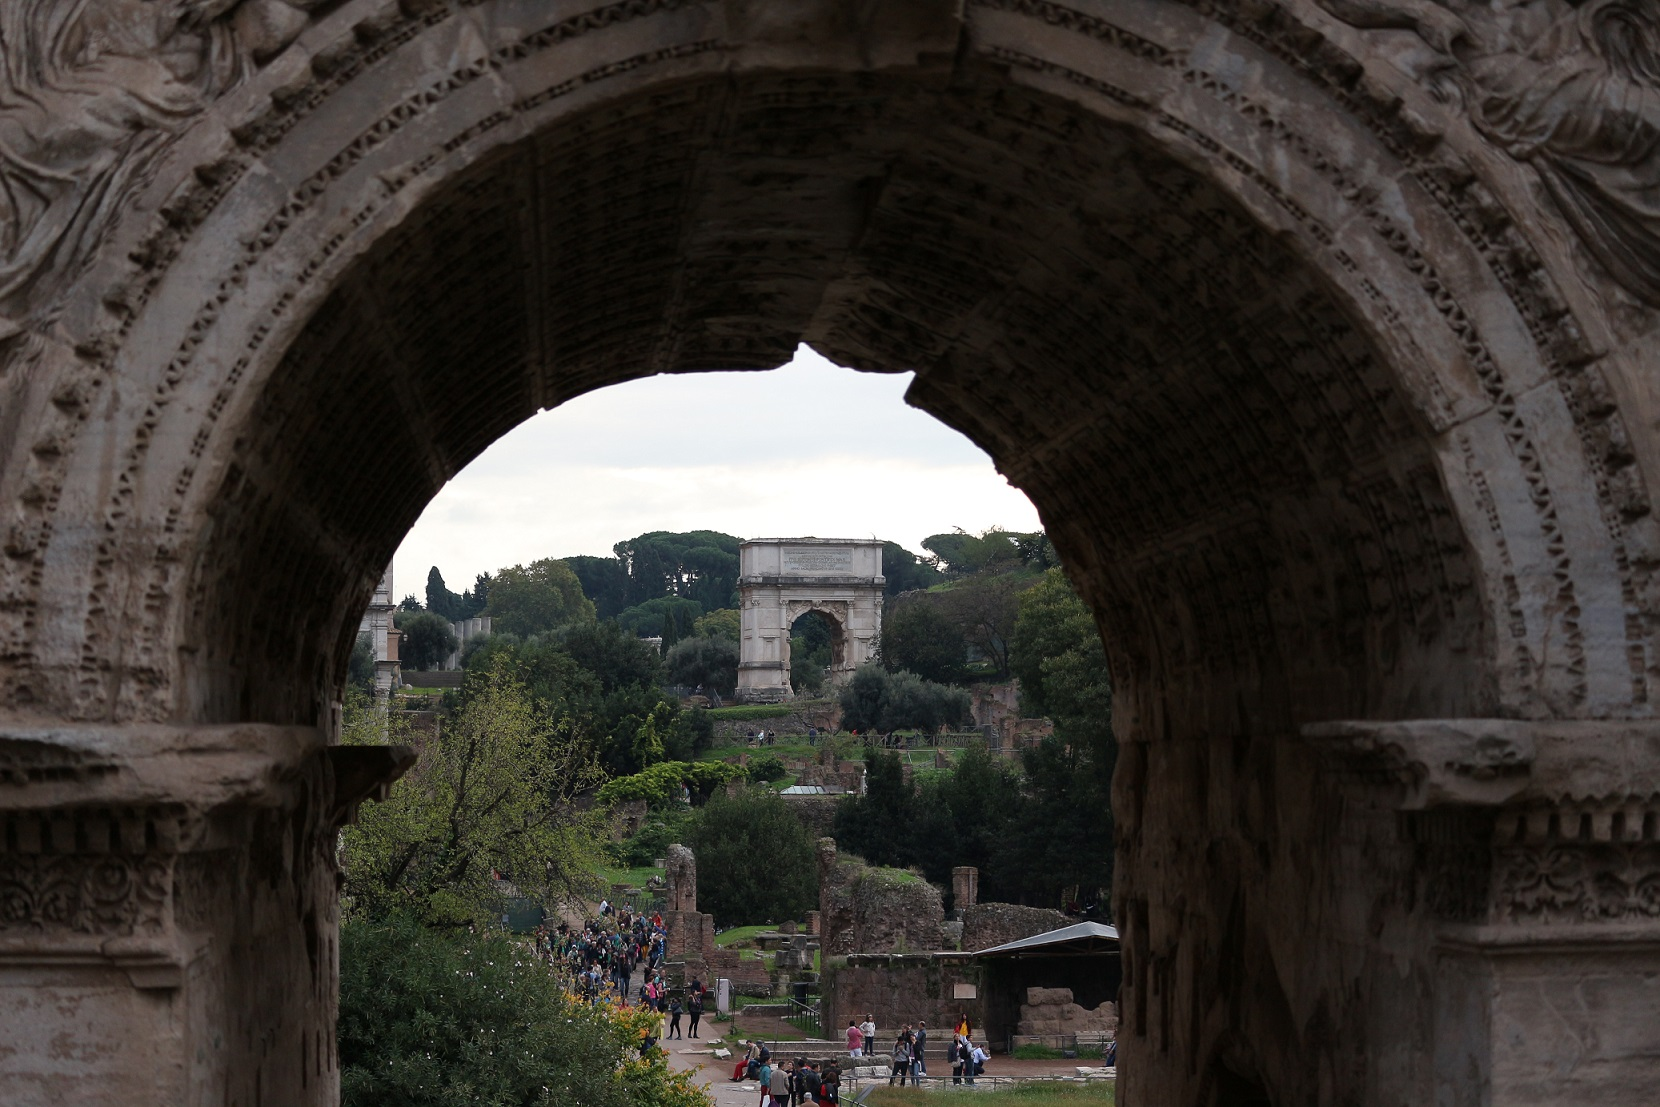 Arches in Rome